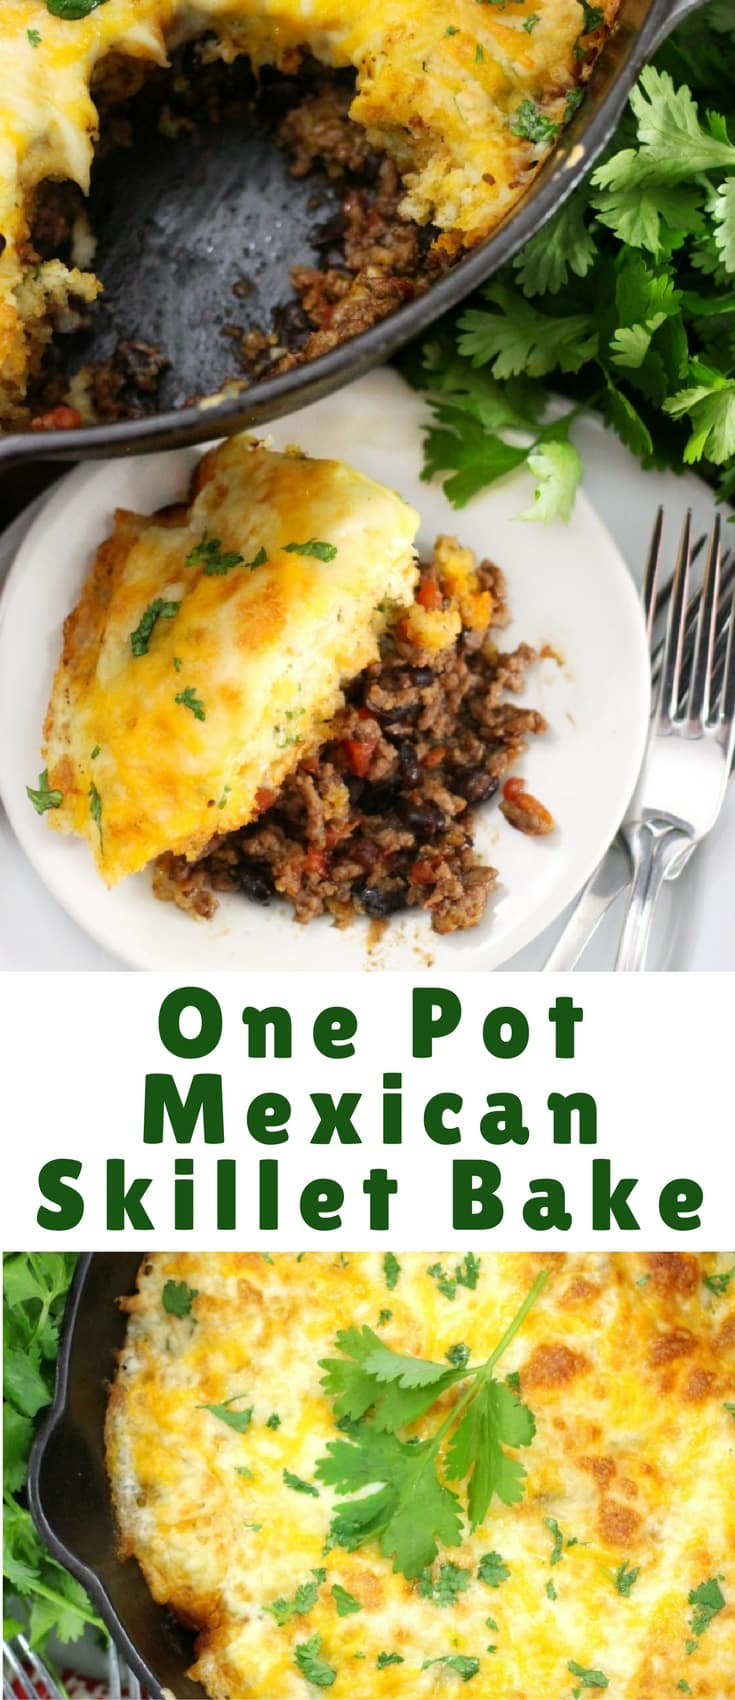 This One Pot Mexican Skillet Bake - Beef and Cheese Cobbler recipe is the perfect easy clean up meal for your busy nights.